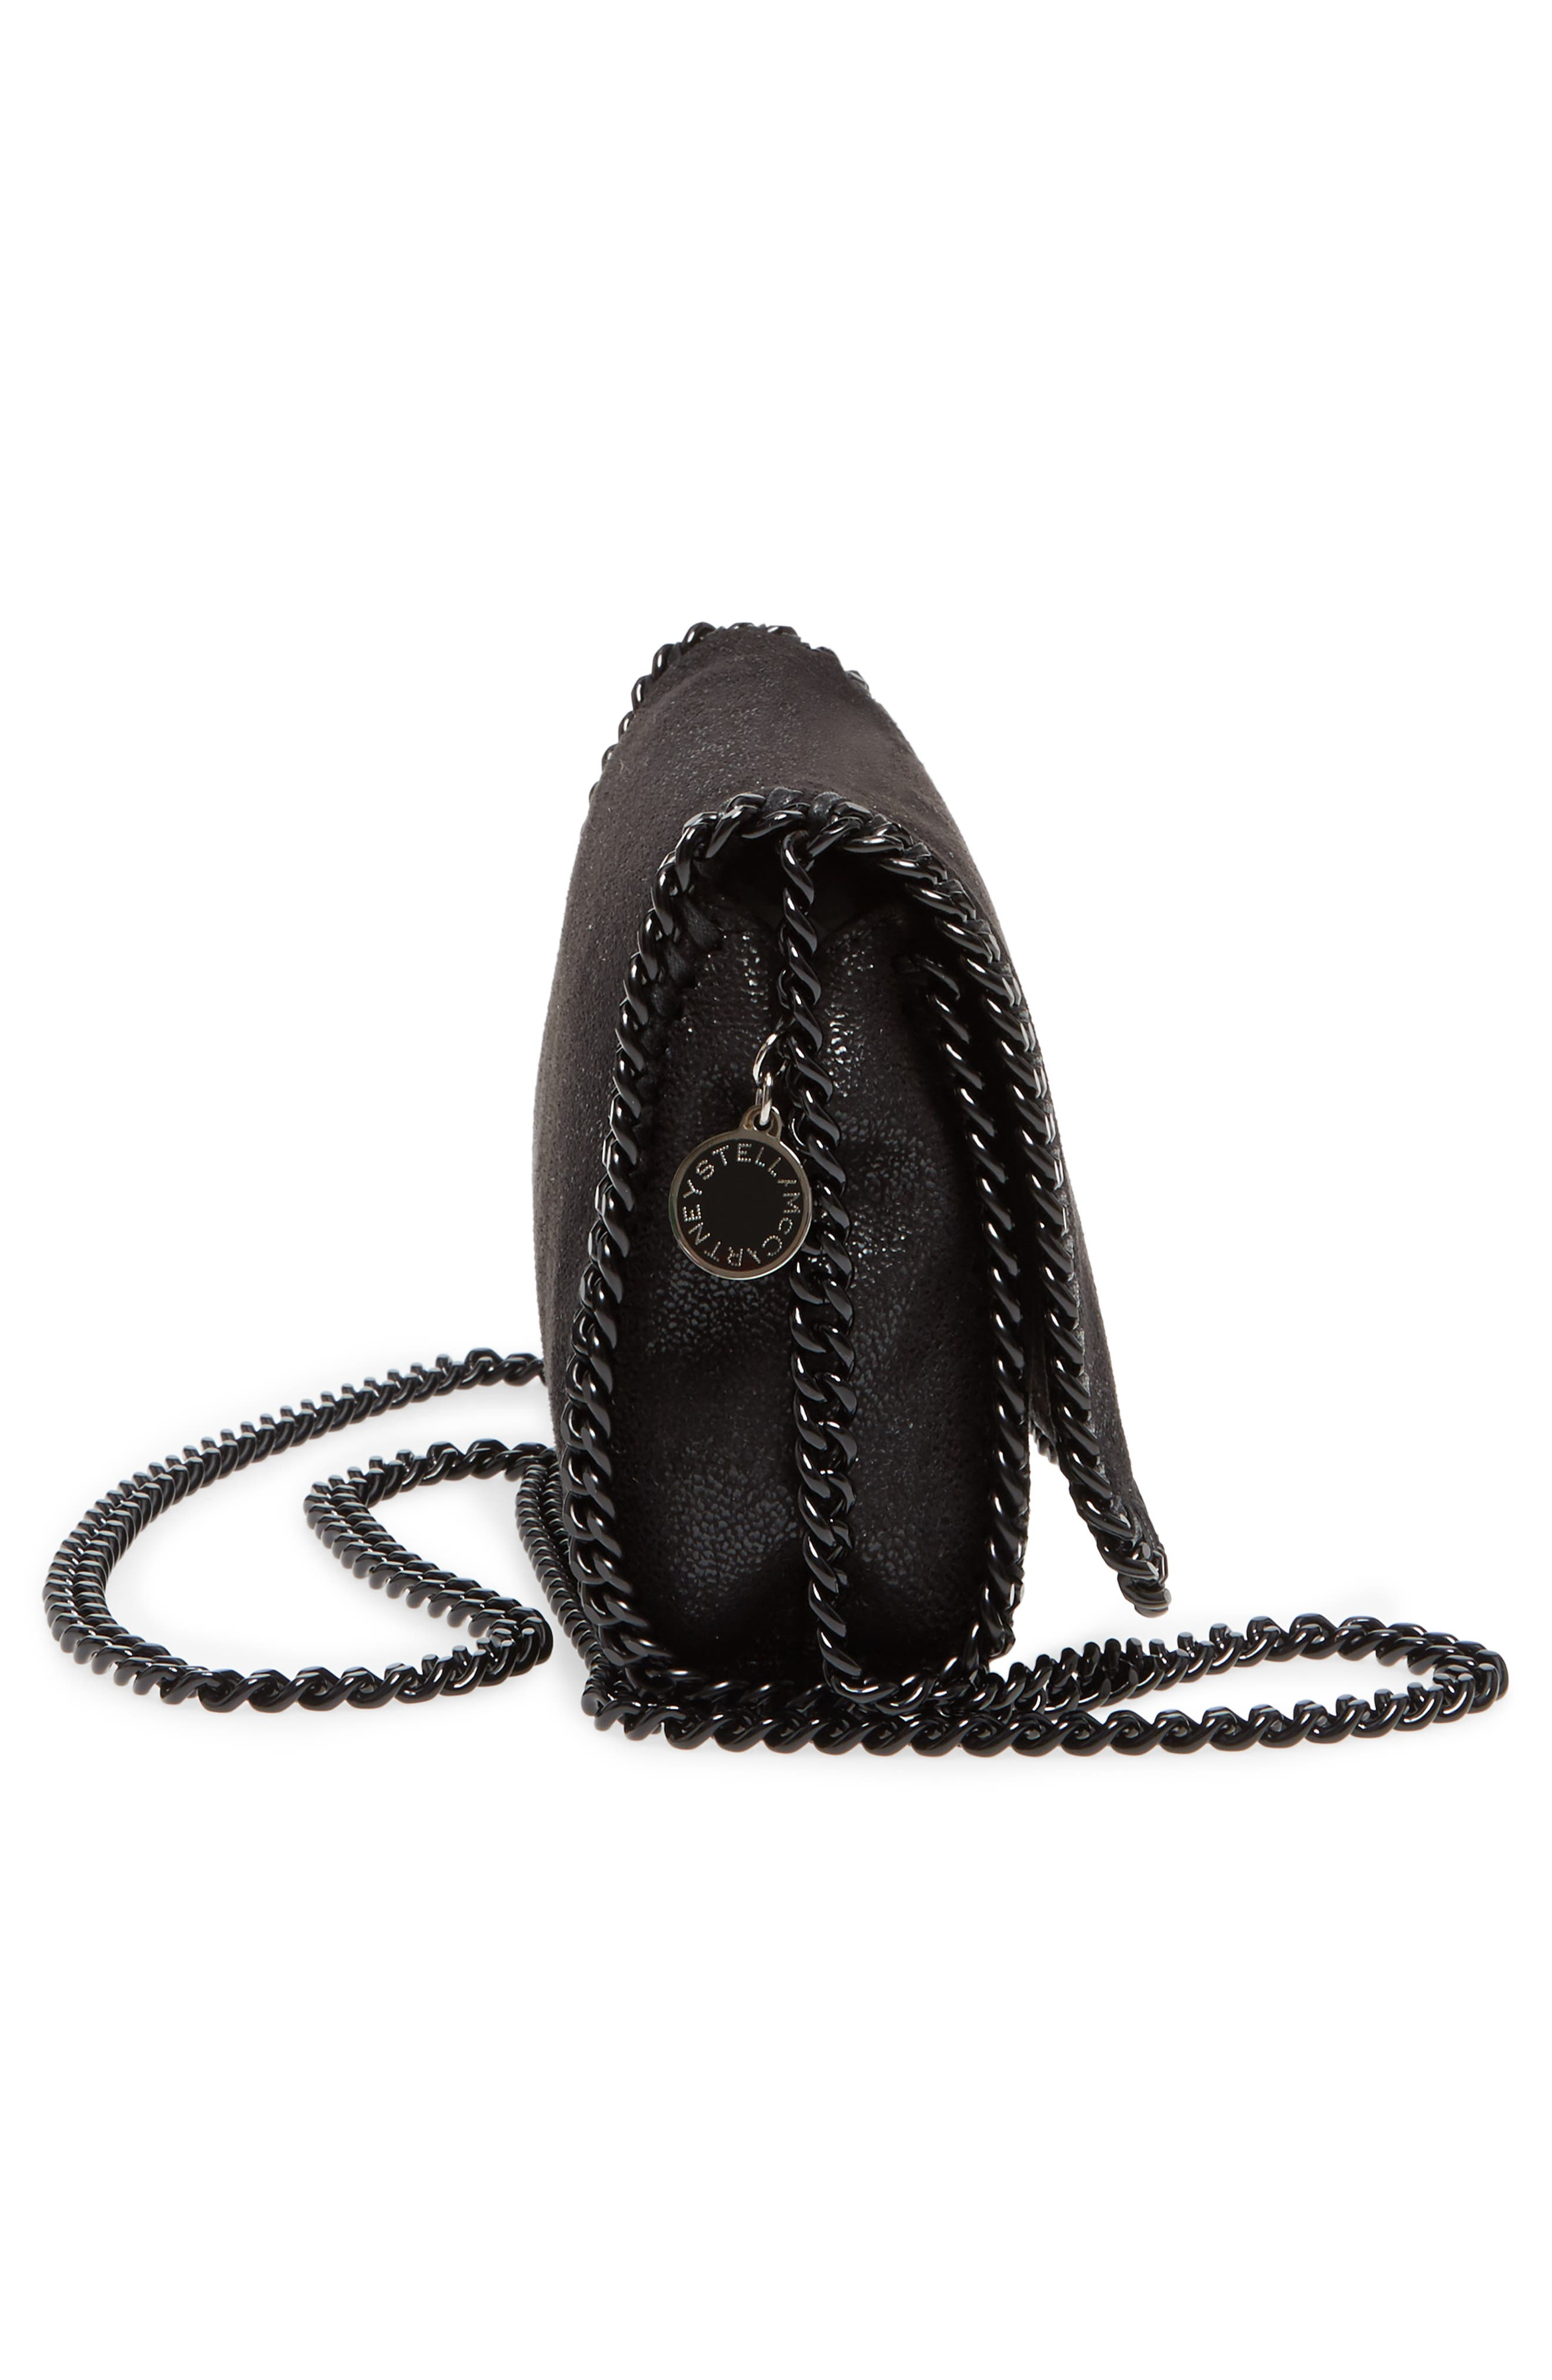 STELLA MCCARTNEY, Falabella Shaggy Deer Faux Leather Clutch, Alternate thumbnail 5, color, BLACK OUT